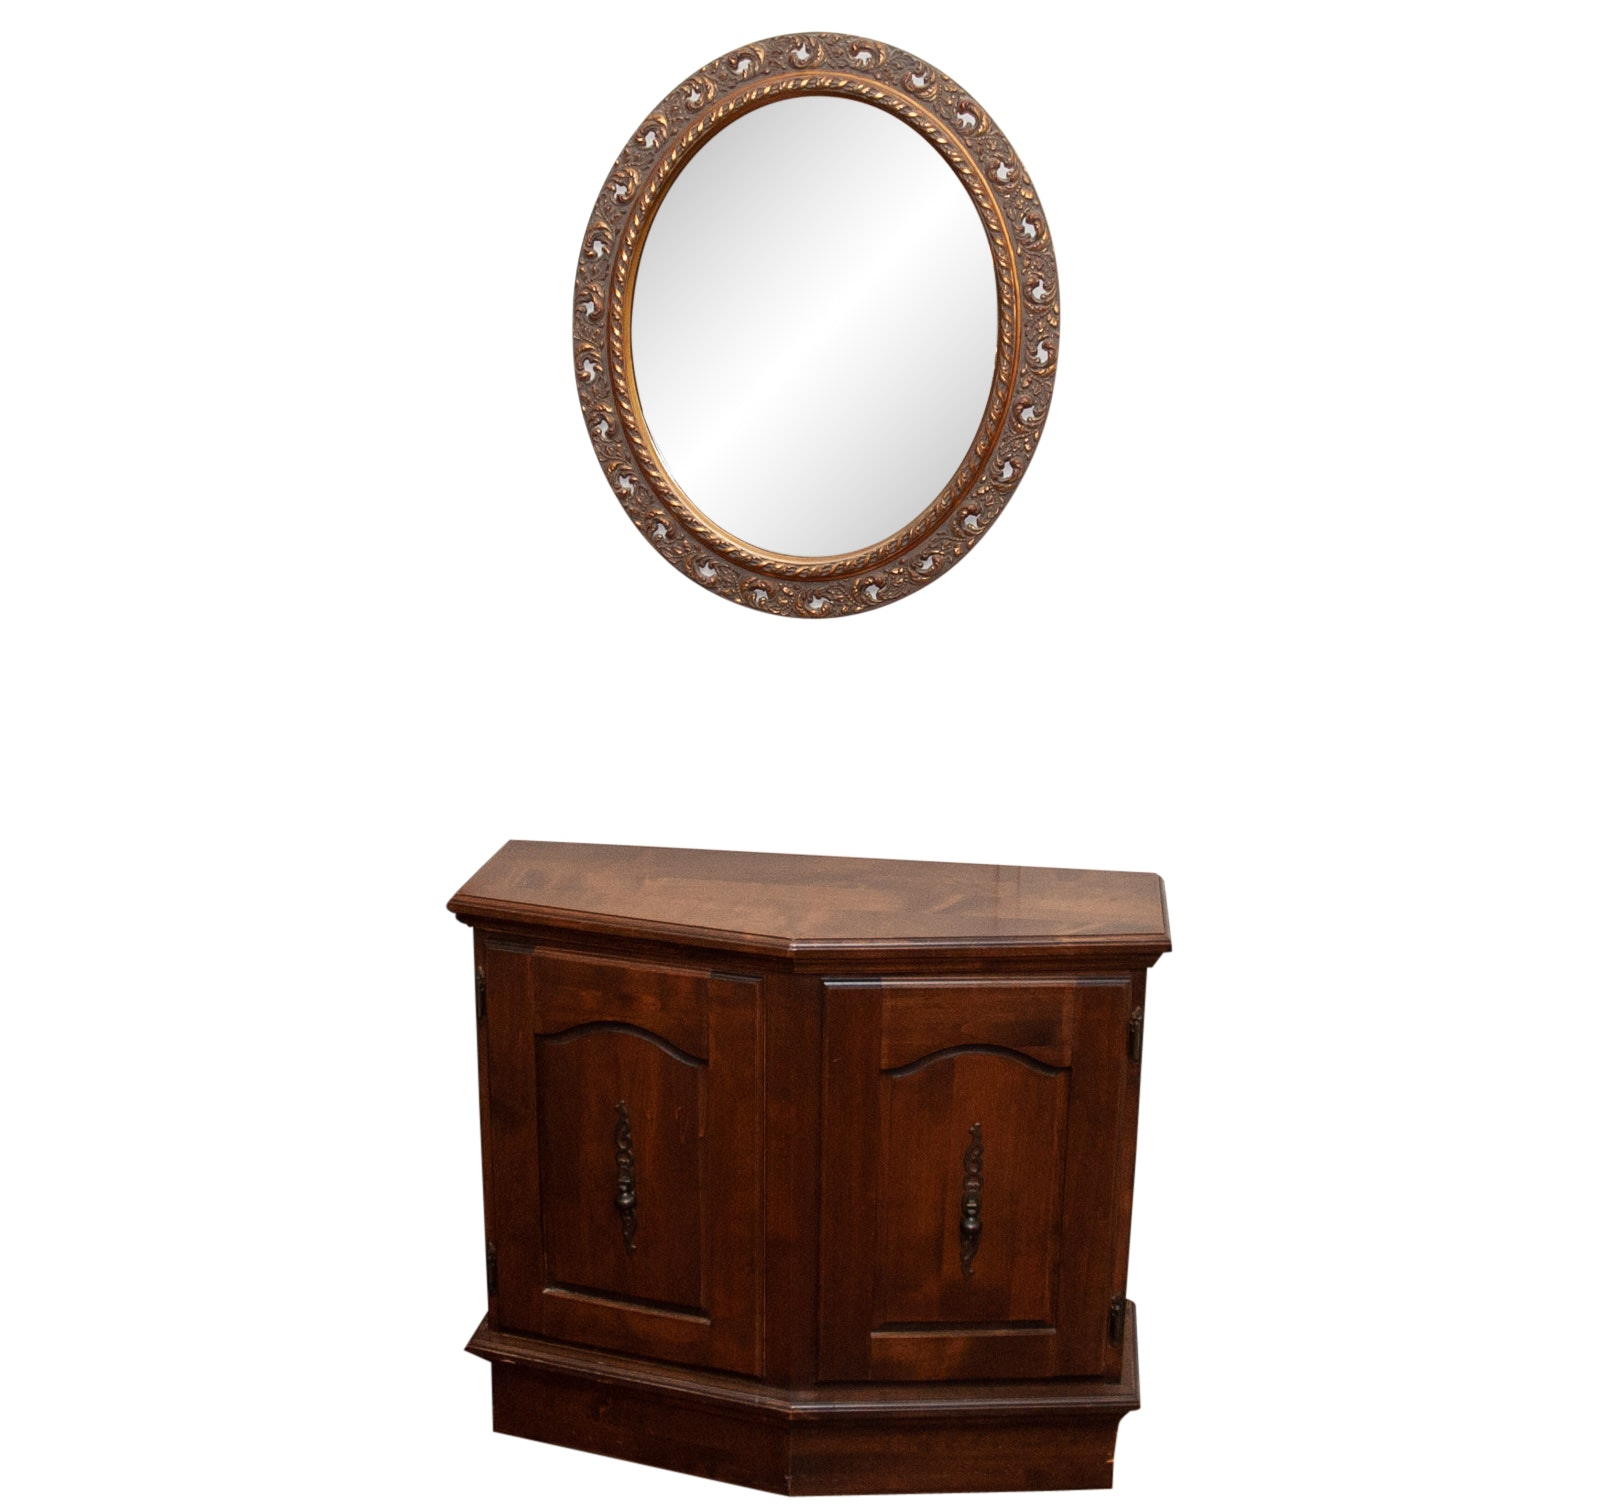 Gilt Embossed Wall Mirror and Wooden Storage Cabinet